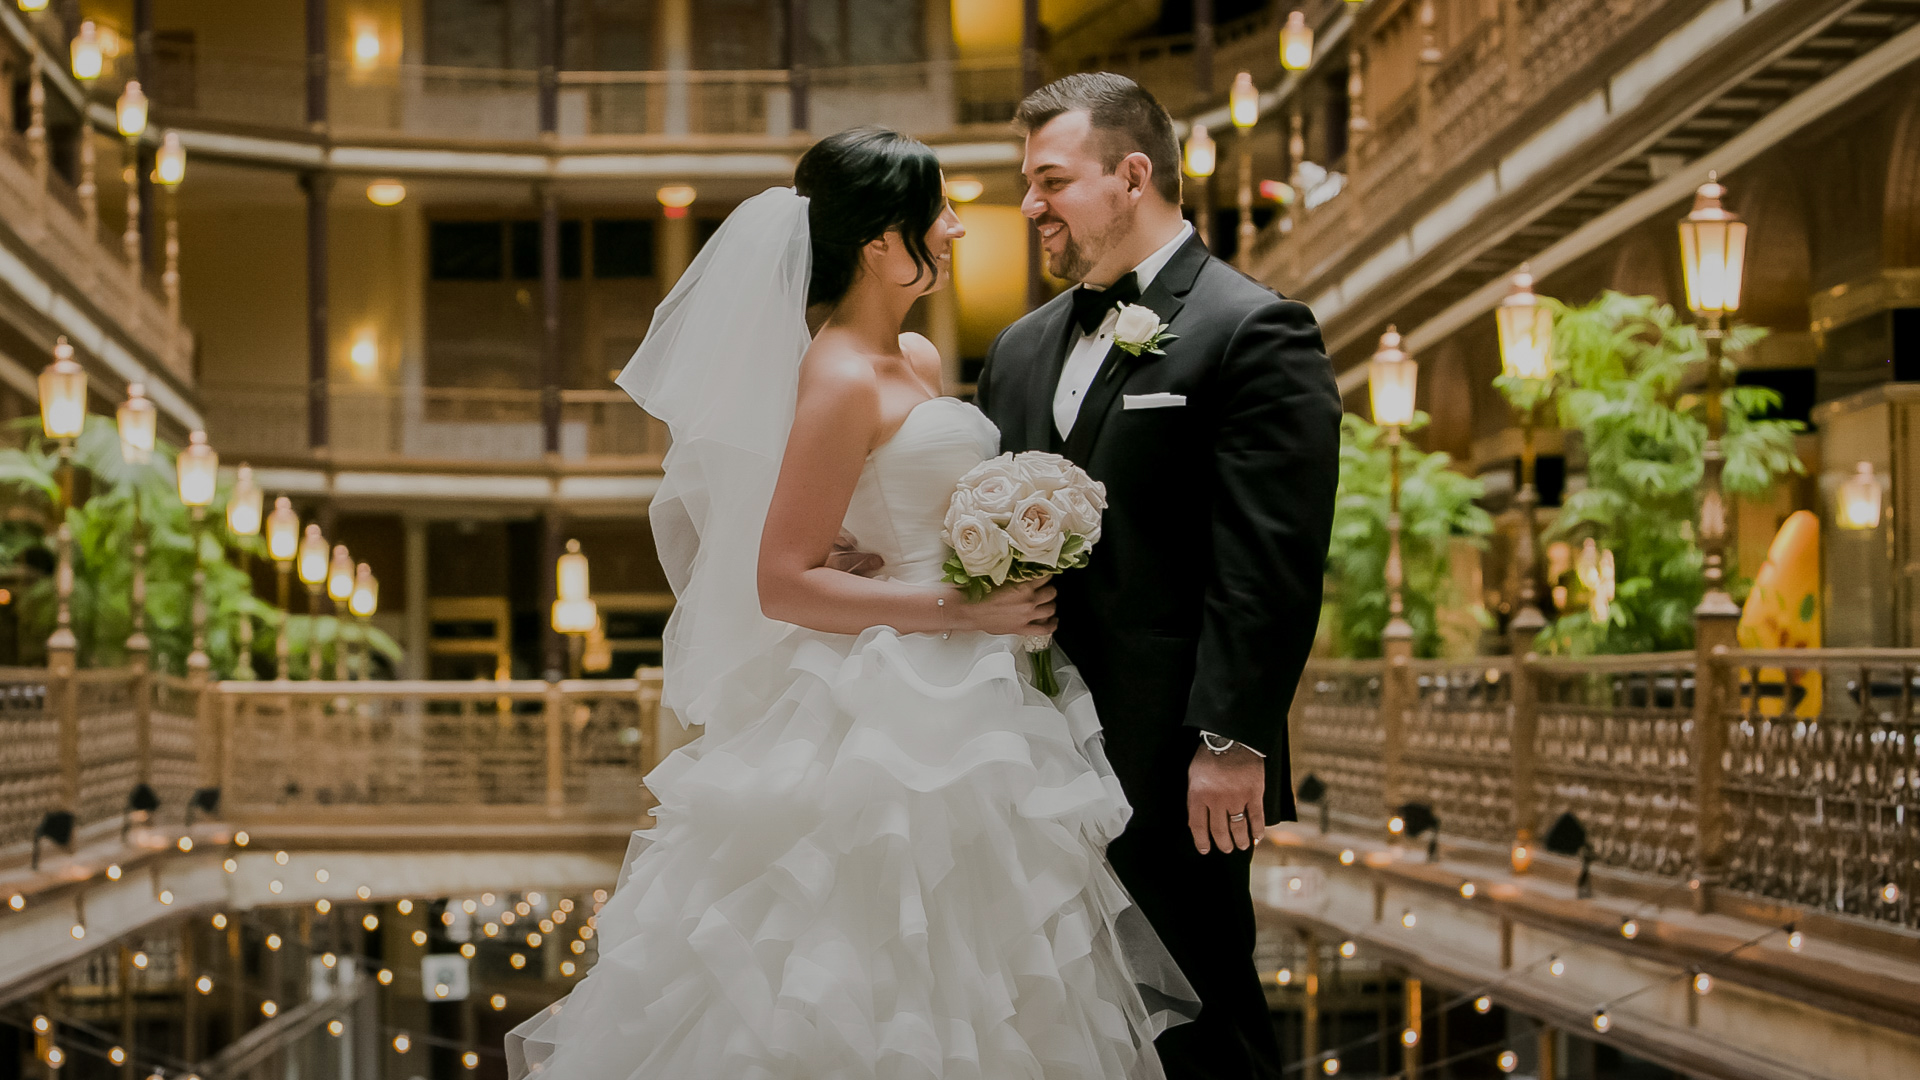 Check portfolios, pricing and availability for wedding photographers in Cleveland